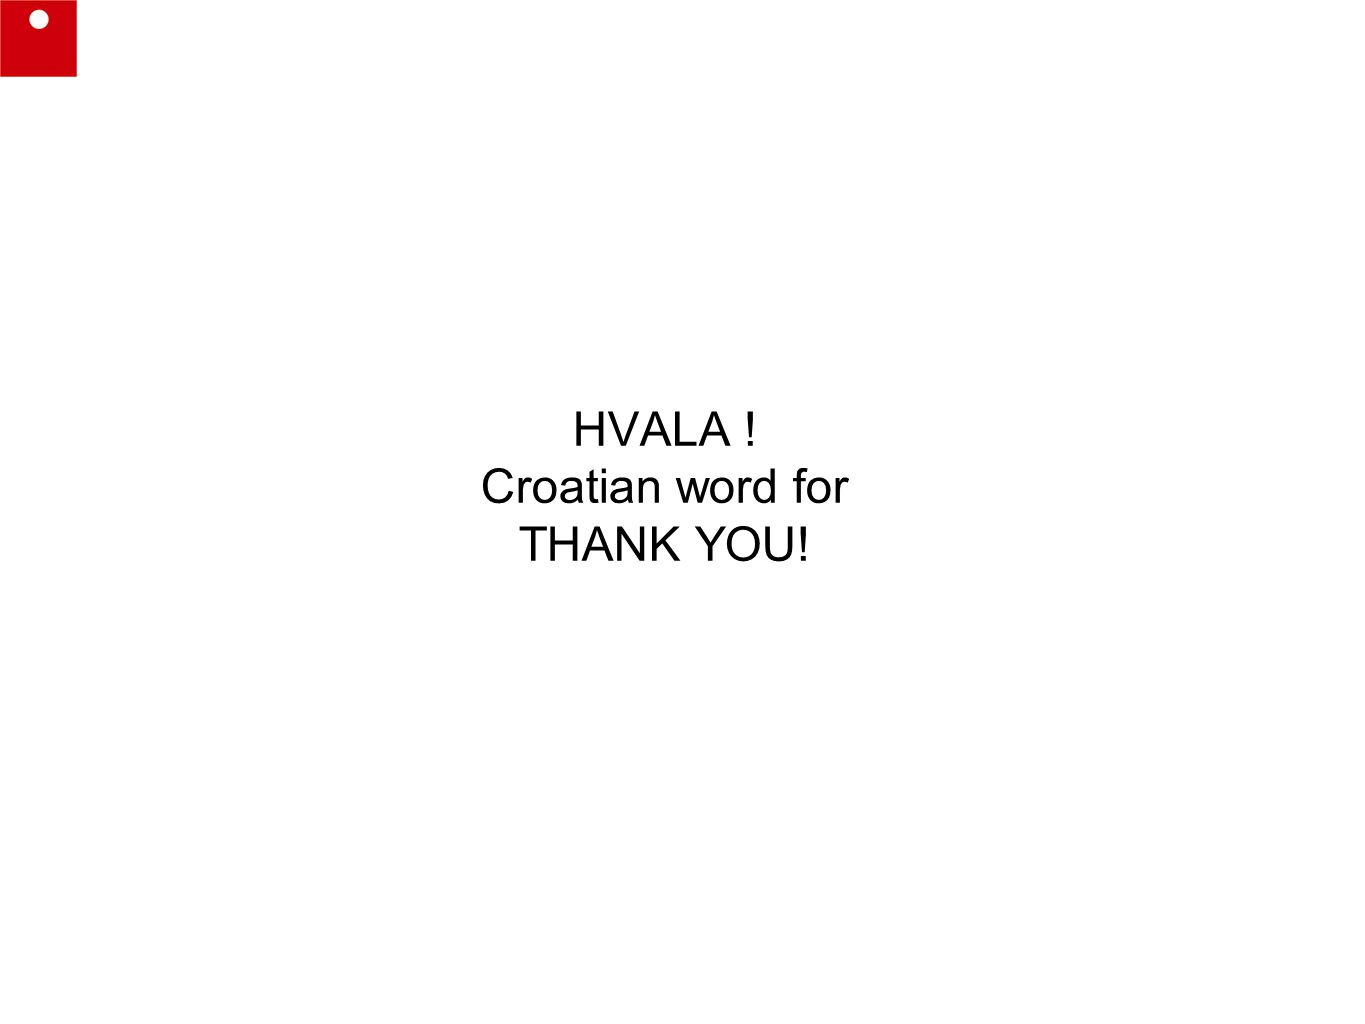 HVALA ! Croatian word for THANK YOU!